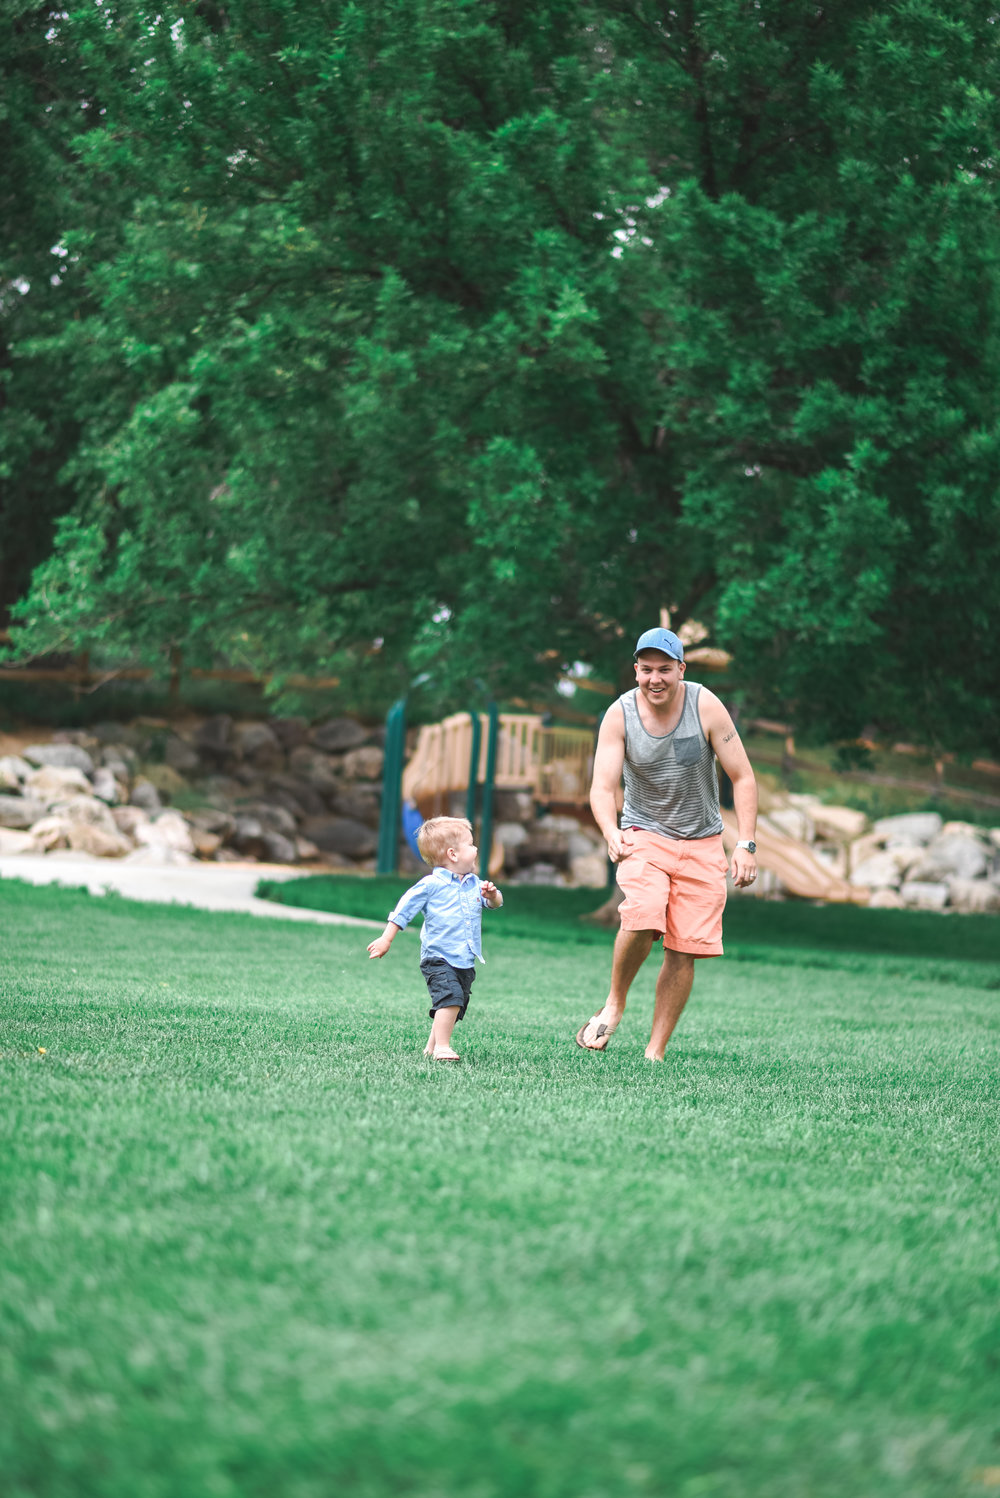 FEATURED FAMILY SESSION - || GRANTS 2ND BIRTHDAY || LIFESTYLE FAMILY SESSION